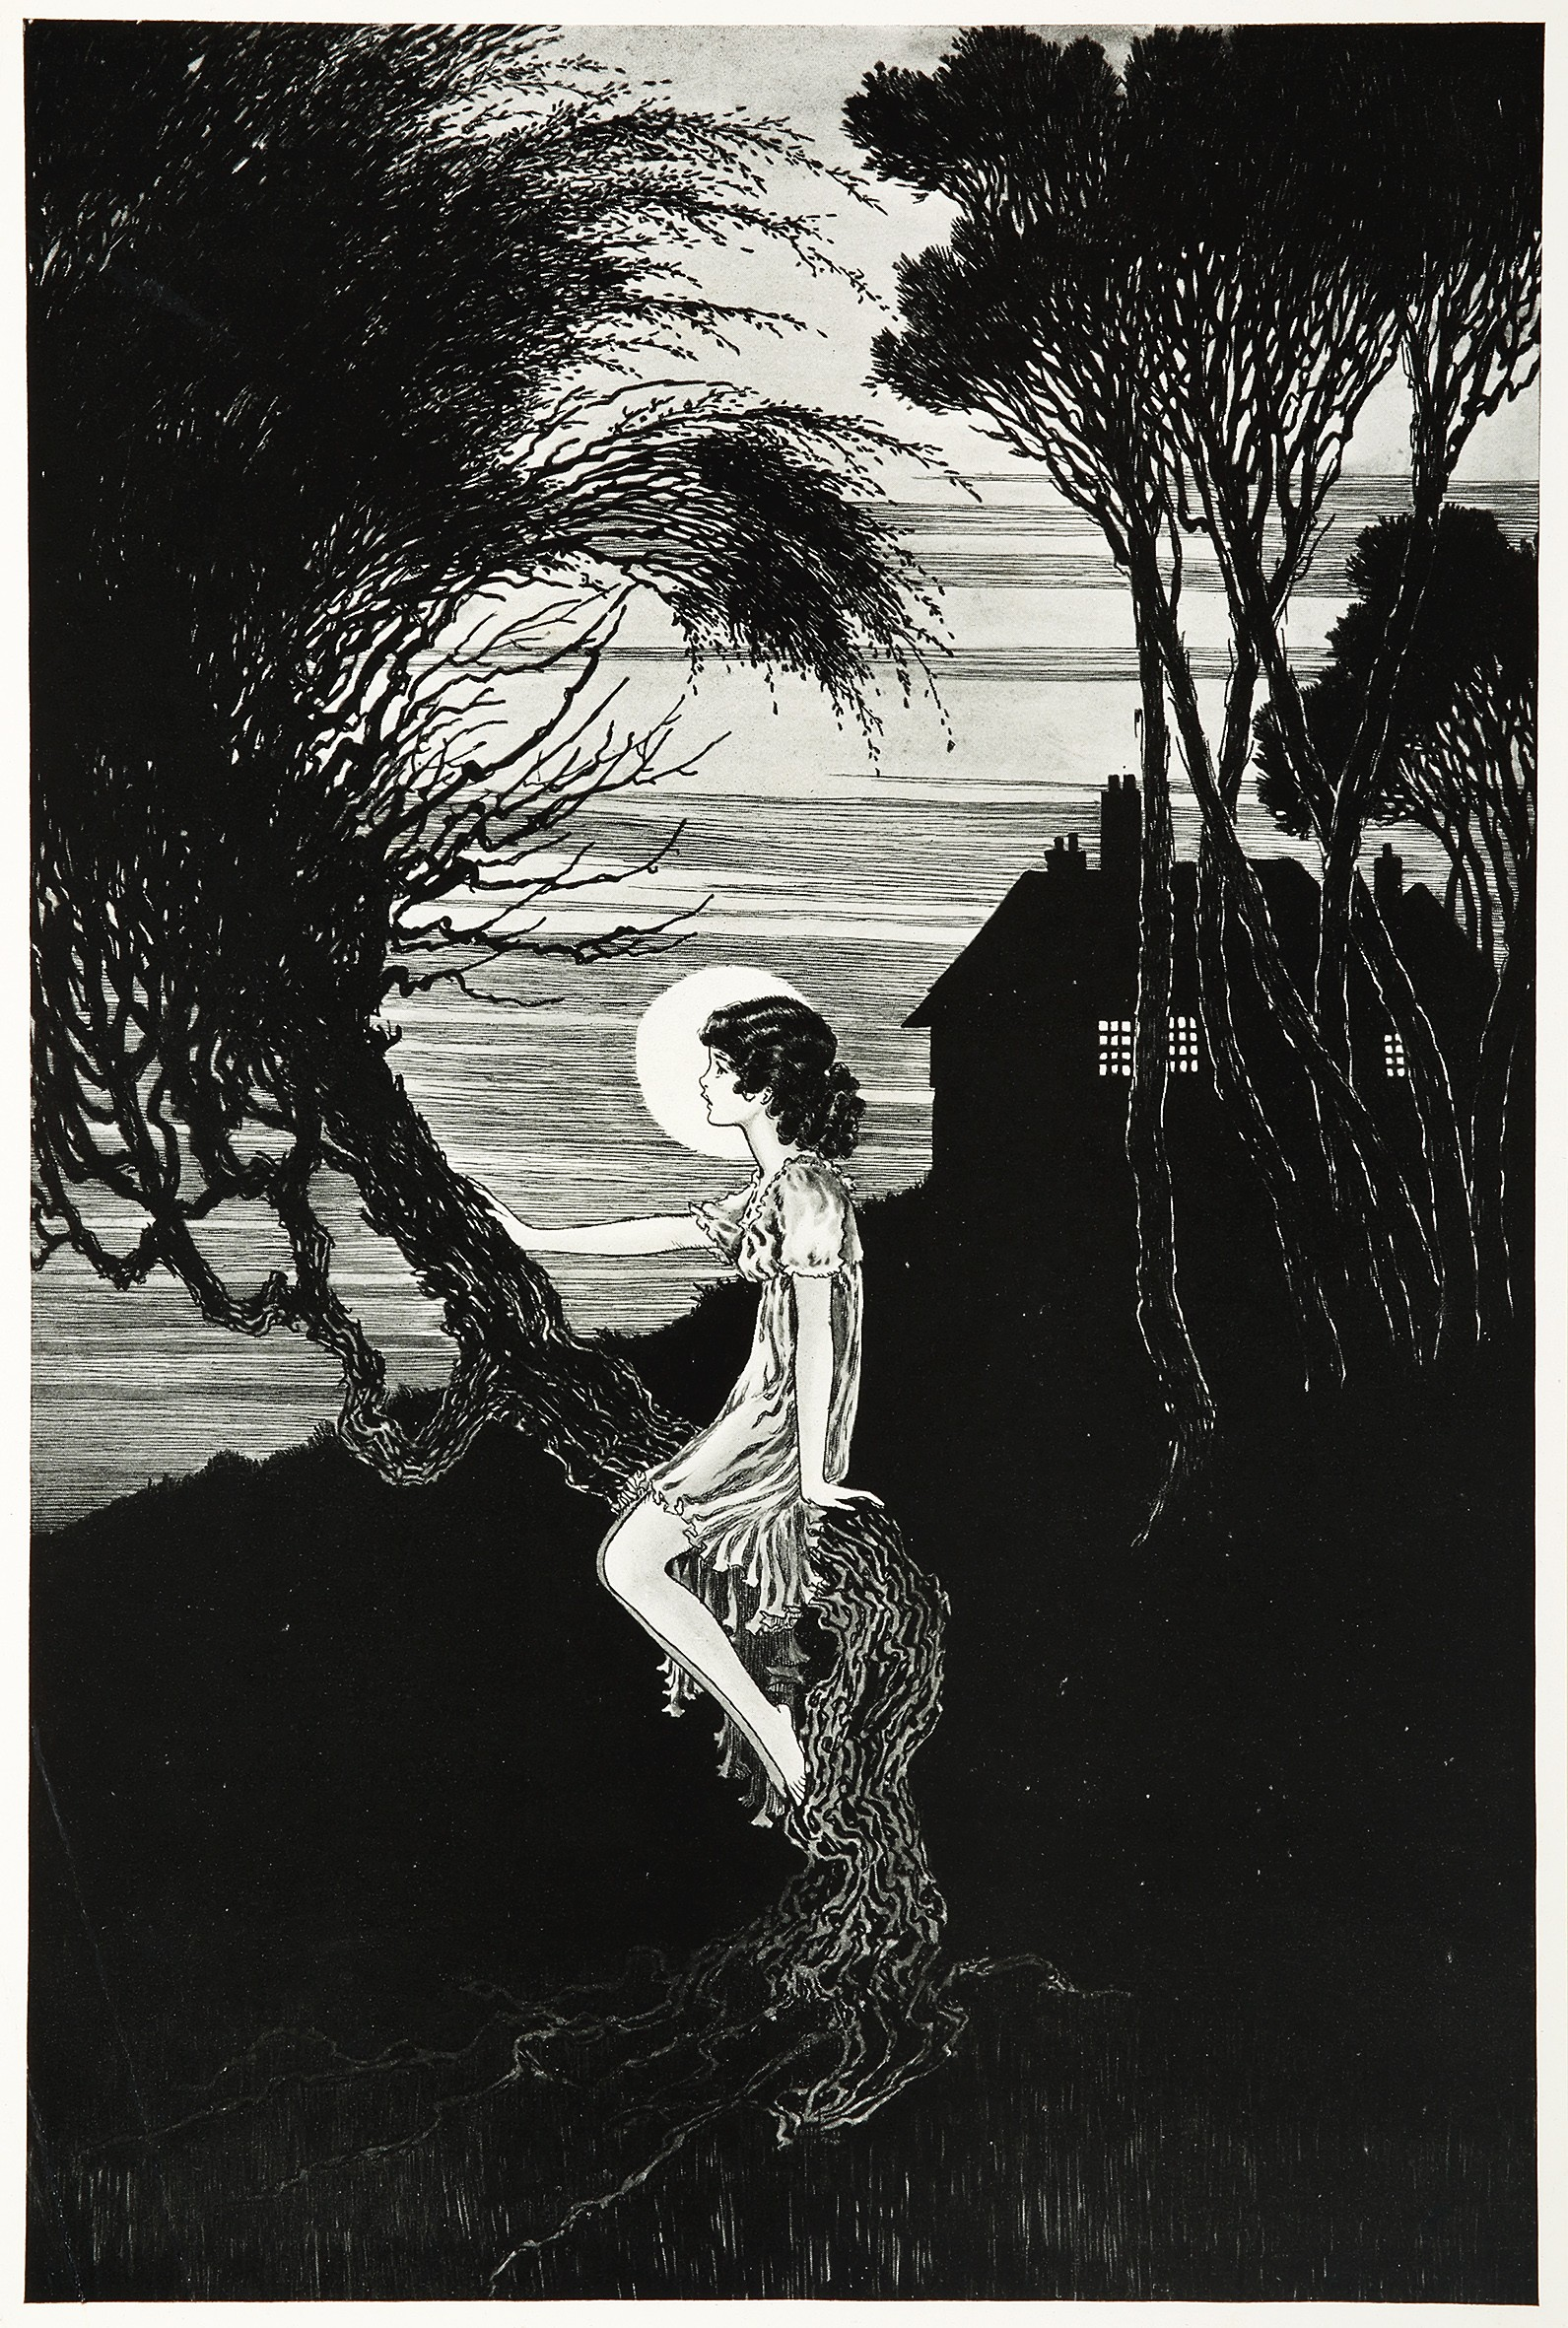 Pen and Ink Illustration by Ida Rentoul Outhwaite